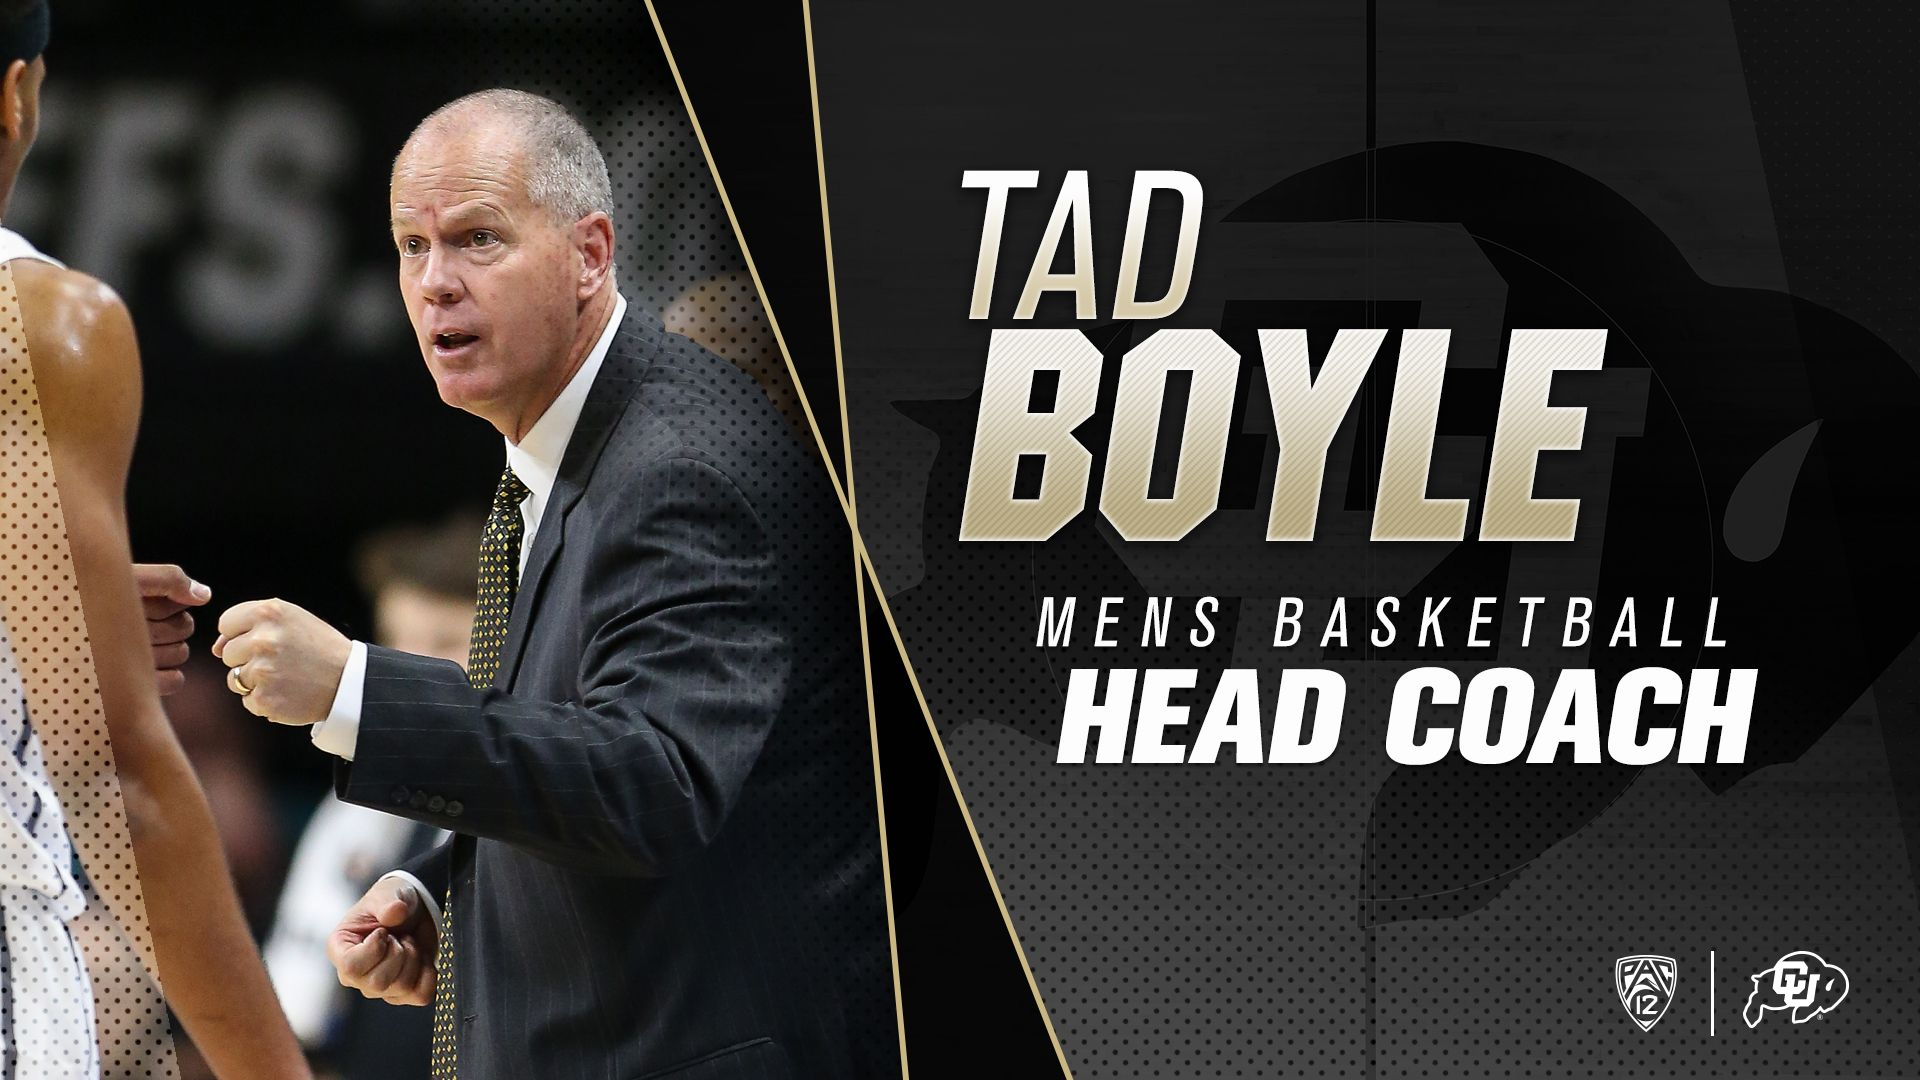 Pin by BRENT on Colorado Athletics Graphic Design Mens